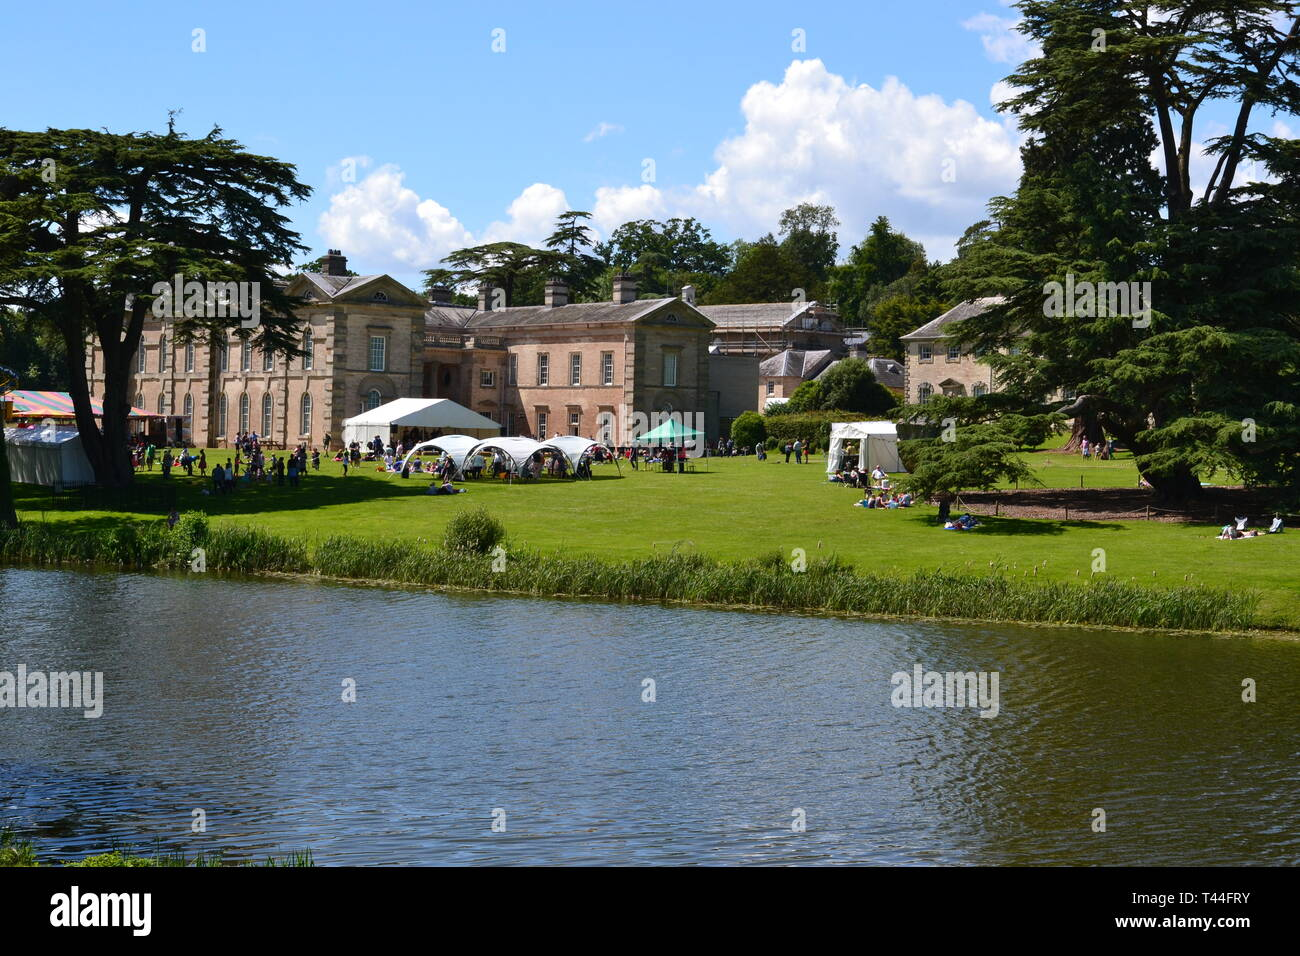 Compton Verney House, Compton Verney, Kineton, Warwickshire, England, UK. 18th century country mansion. Art Gallery with landscaped grounds. Stock Photo